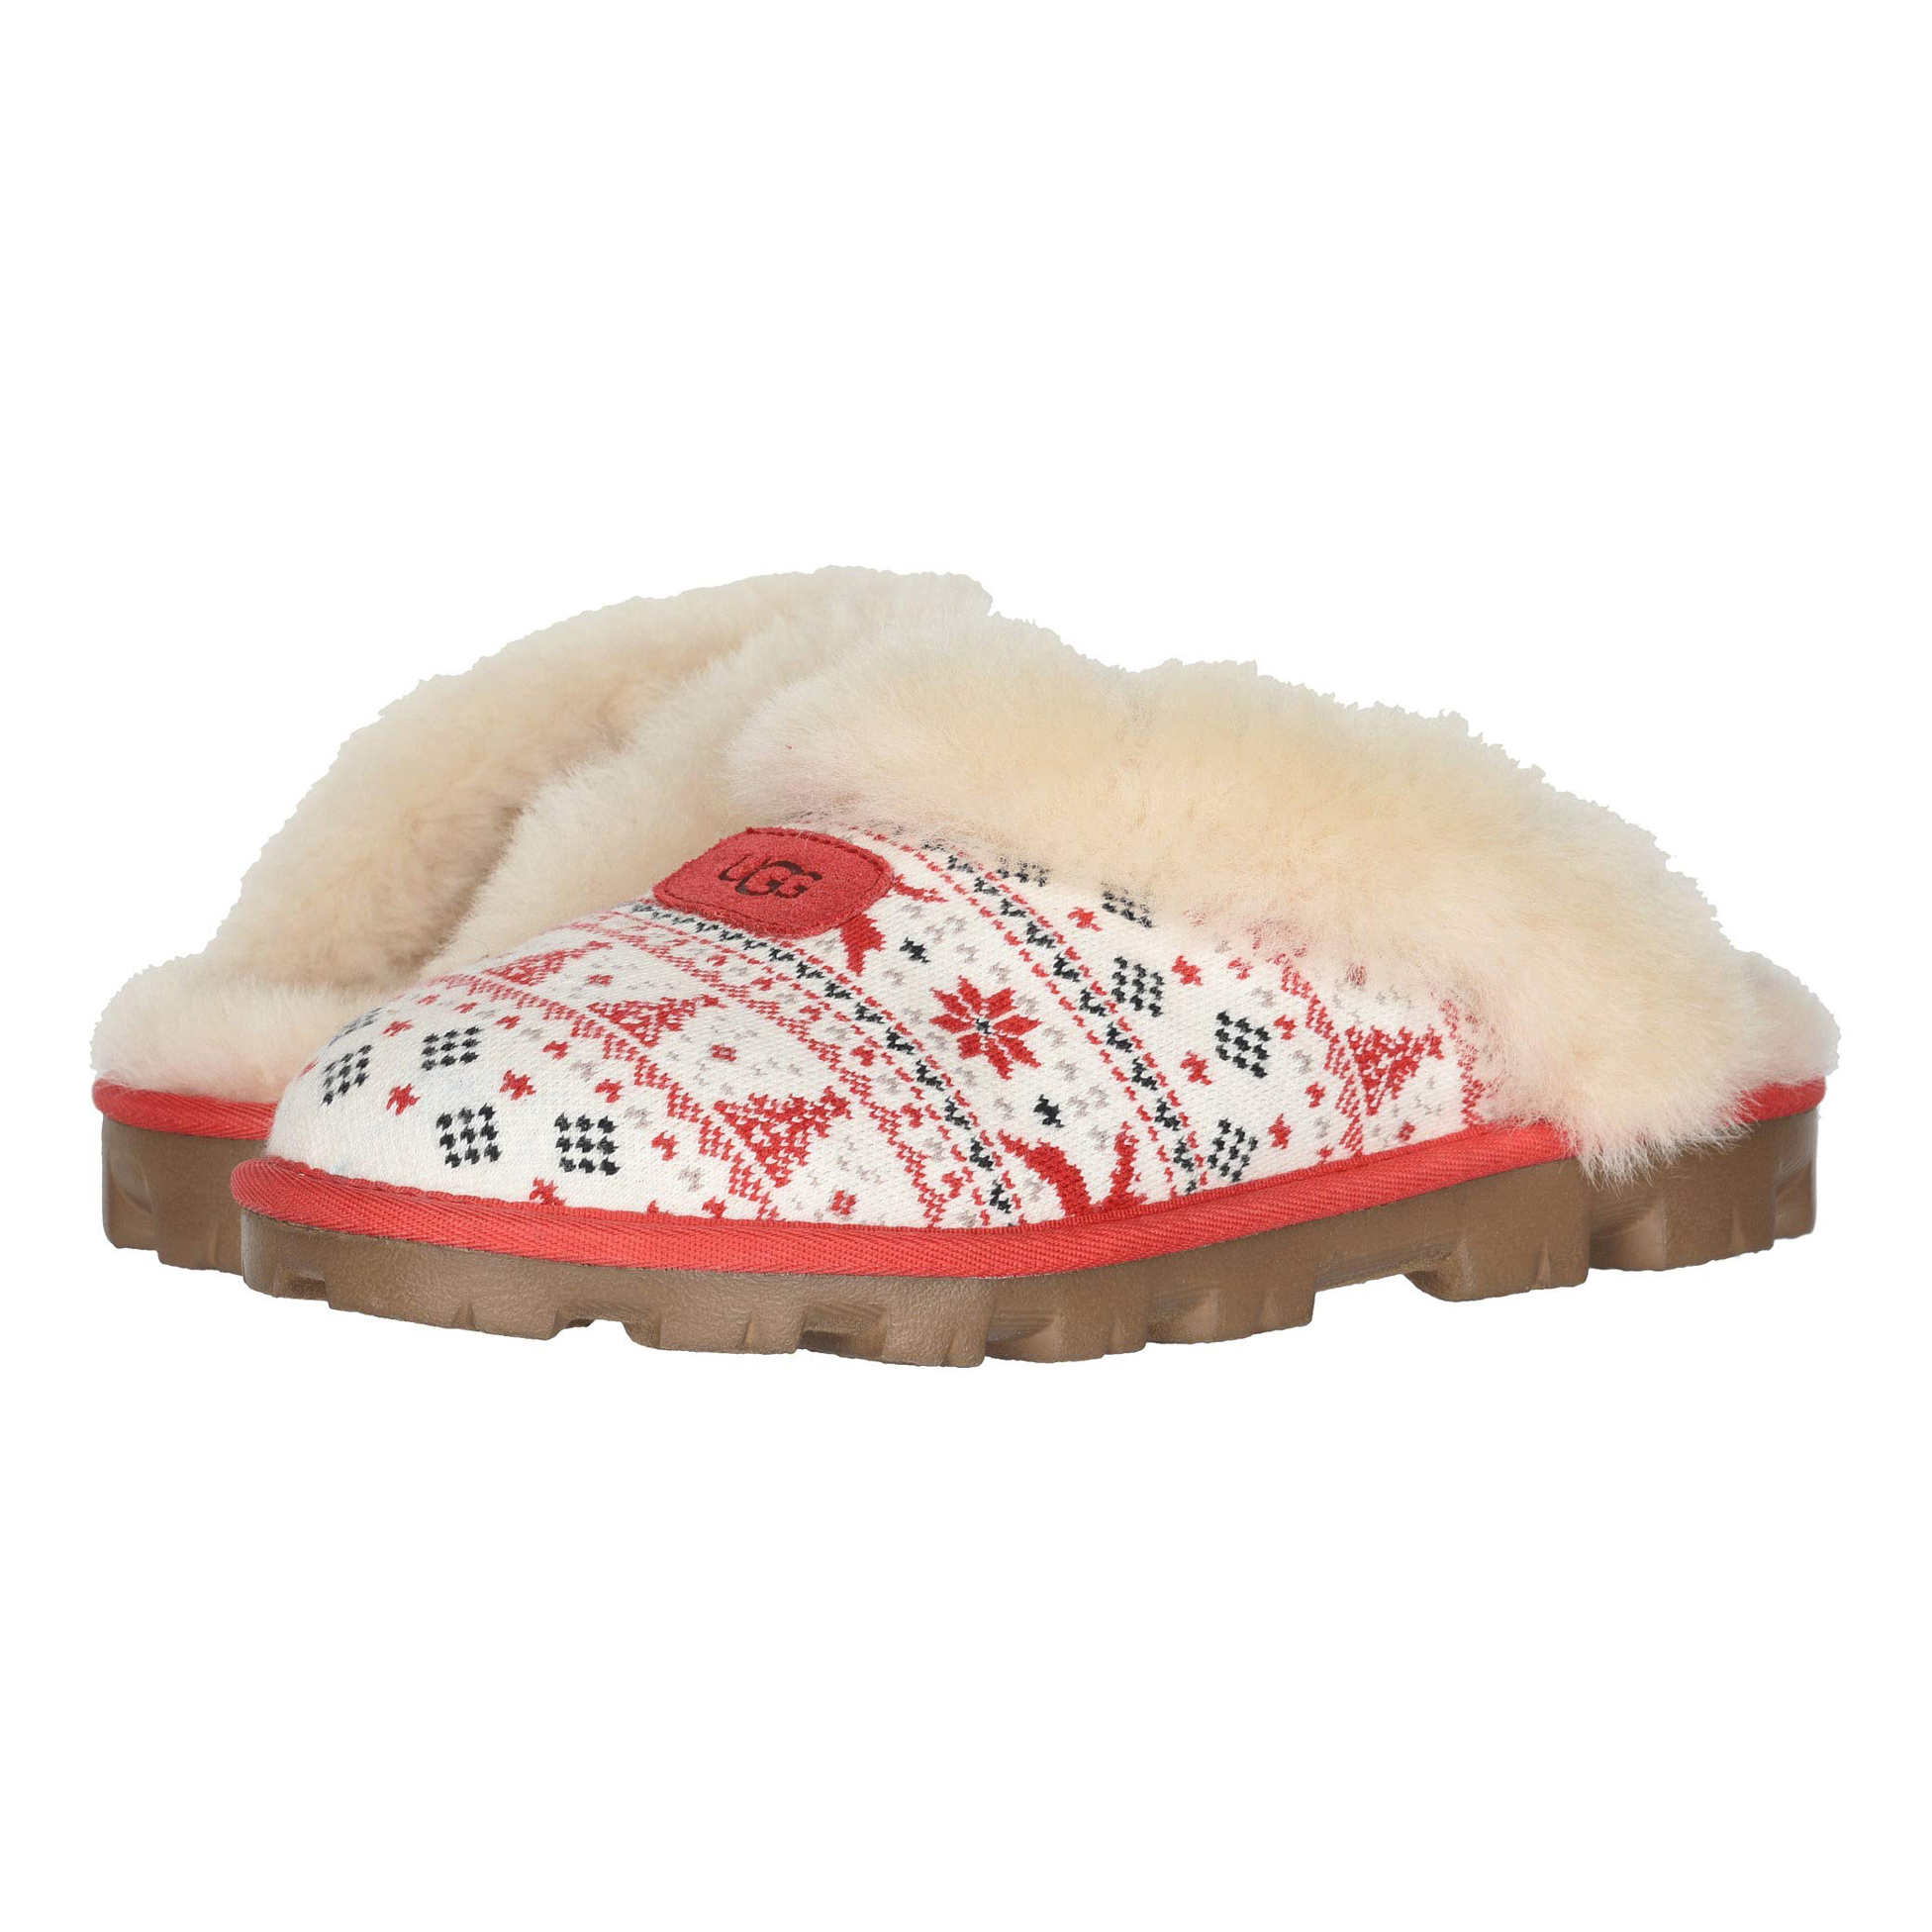 Best Christmas gifts 2019 - Zappos x UGG Holiday Sweater Slipper